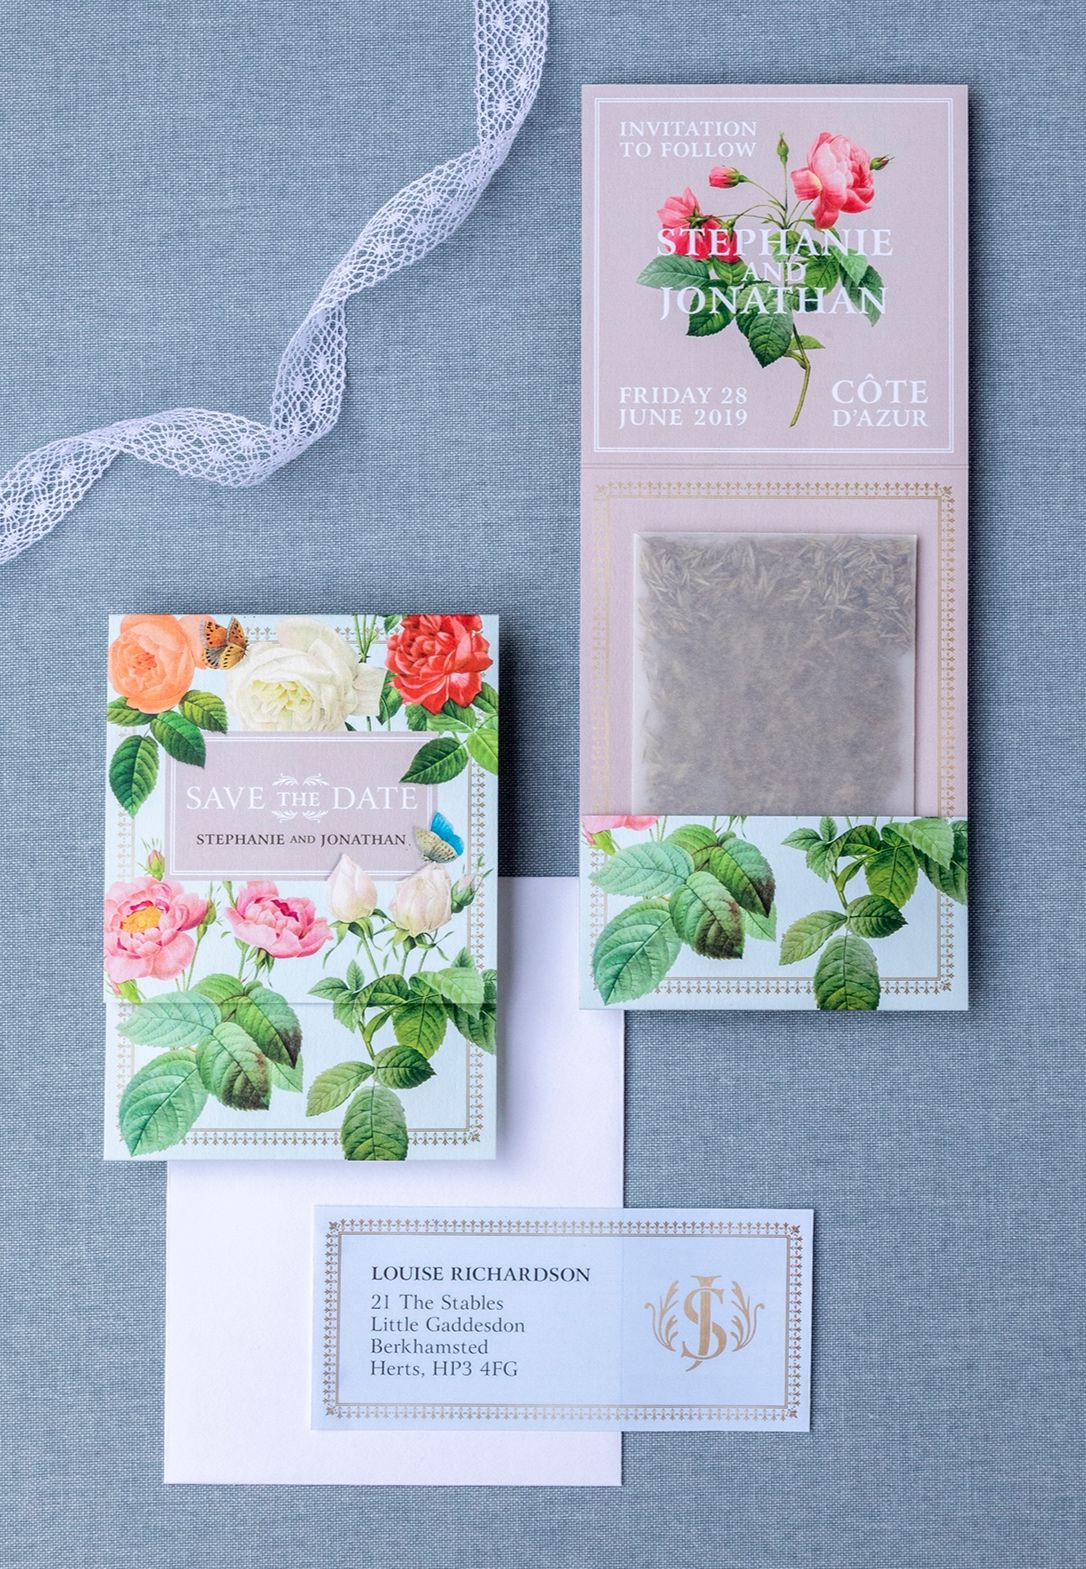 Seed sachet save the date Louise Richardson.jpg